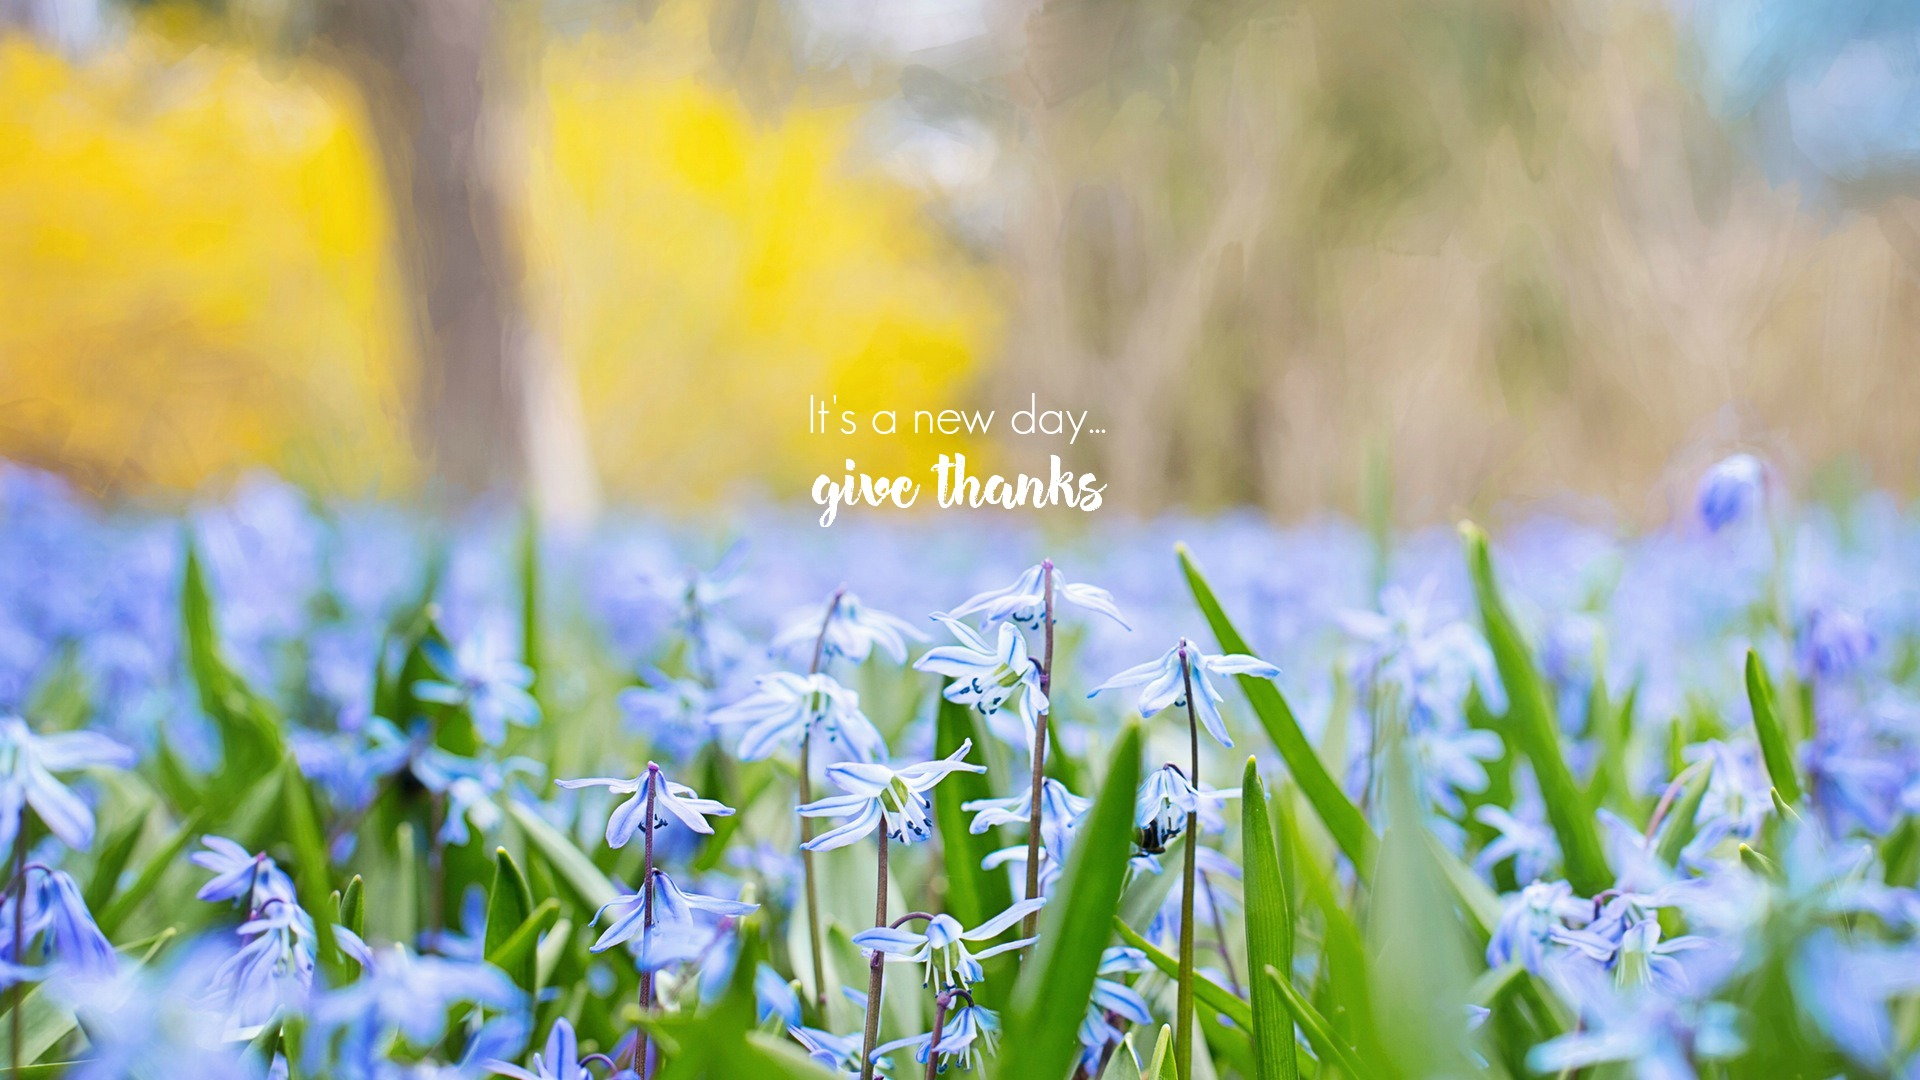 It's a new day - give thanks. A desktop gratitude wallpaper from The Garden of Gratitude. Circle of Daydreams. www.circleofdaydreams.com